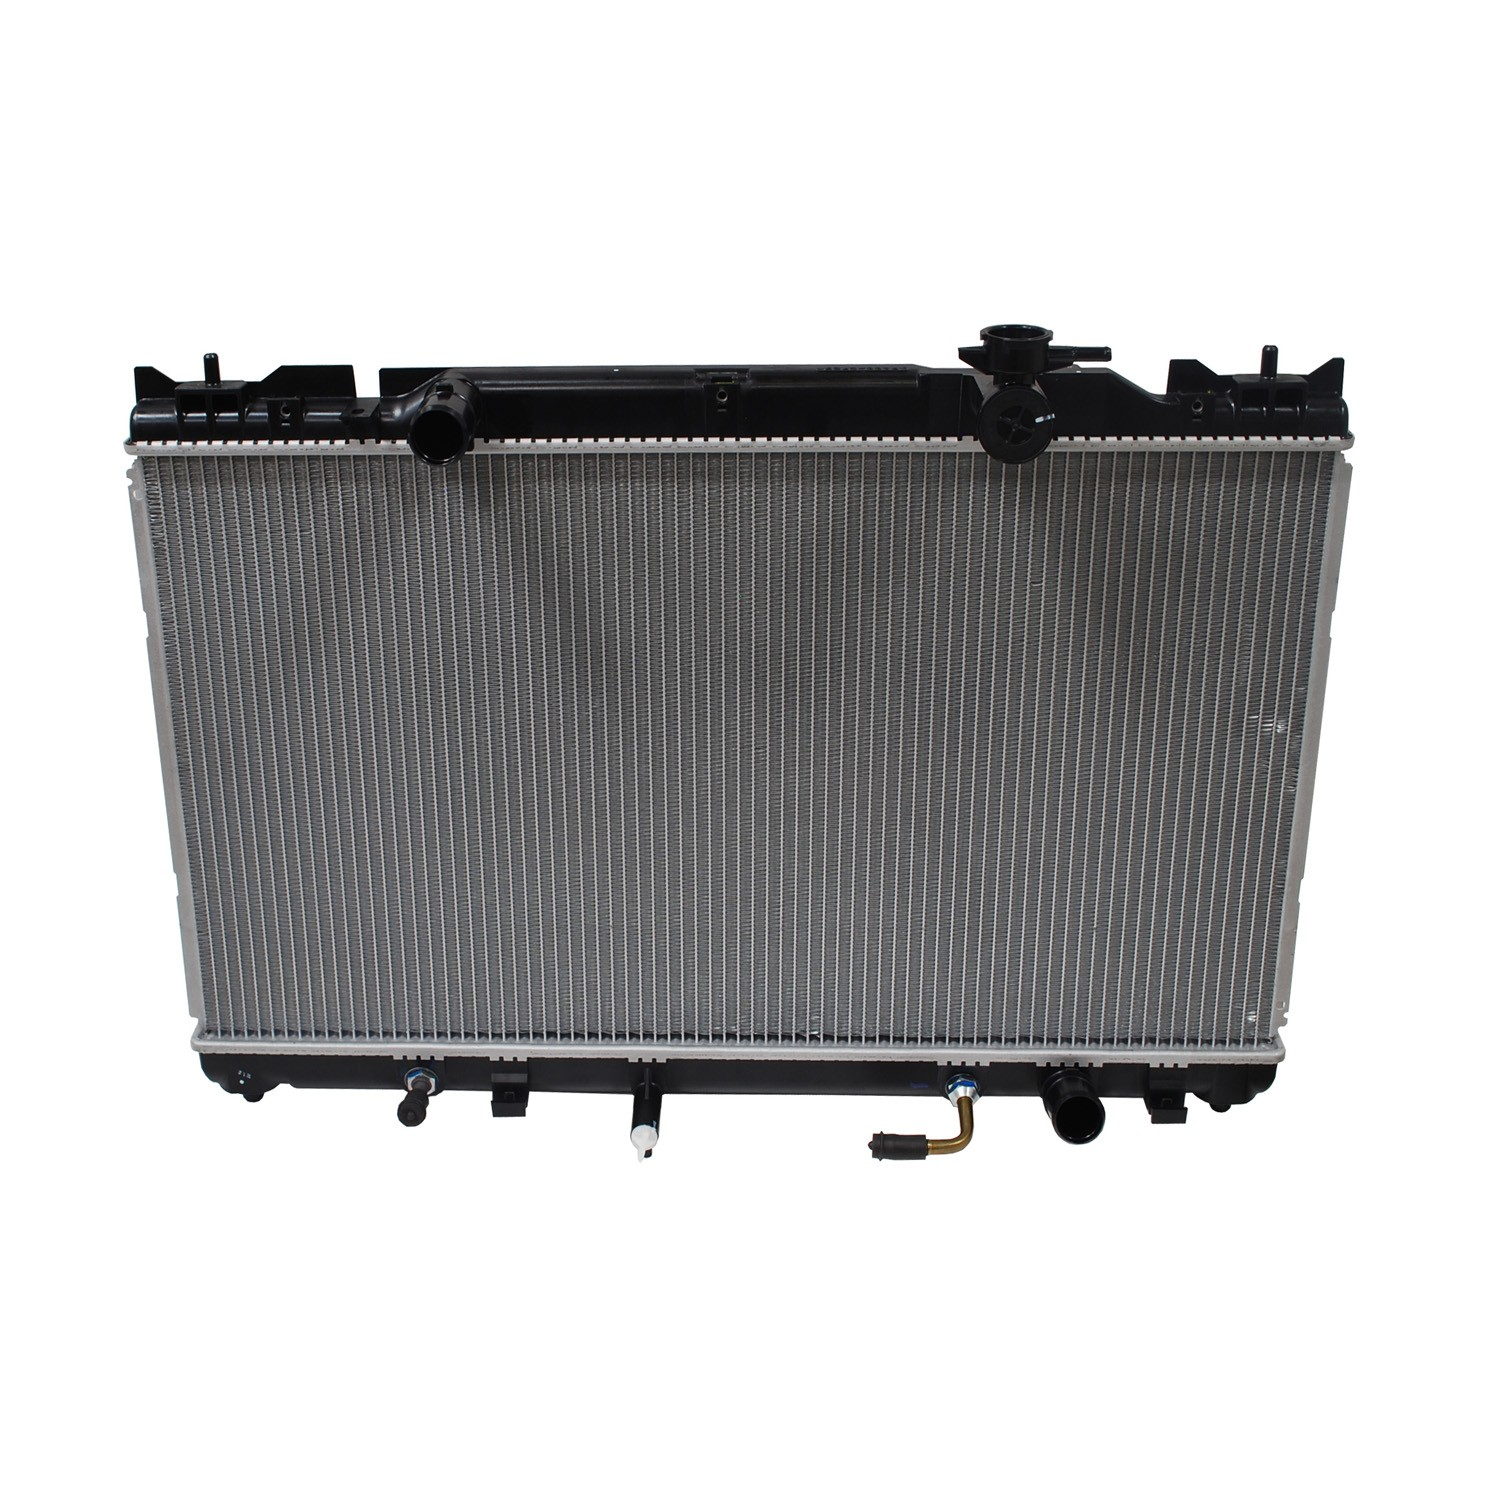 Denso 2210505 Radiator Fits 2002-2006 Toyota Camry 2210505